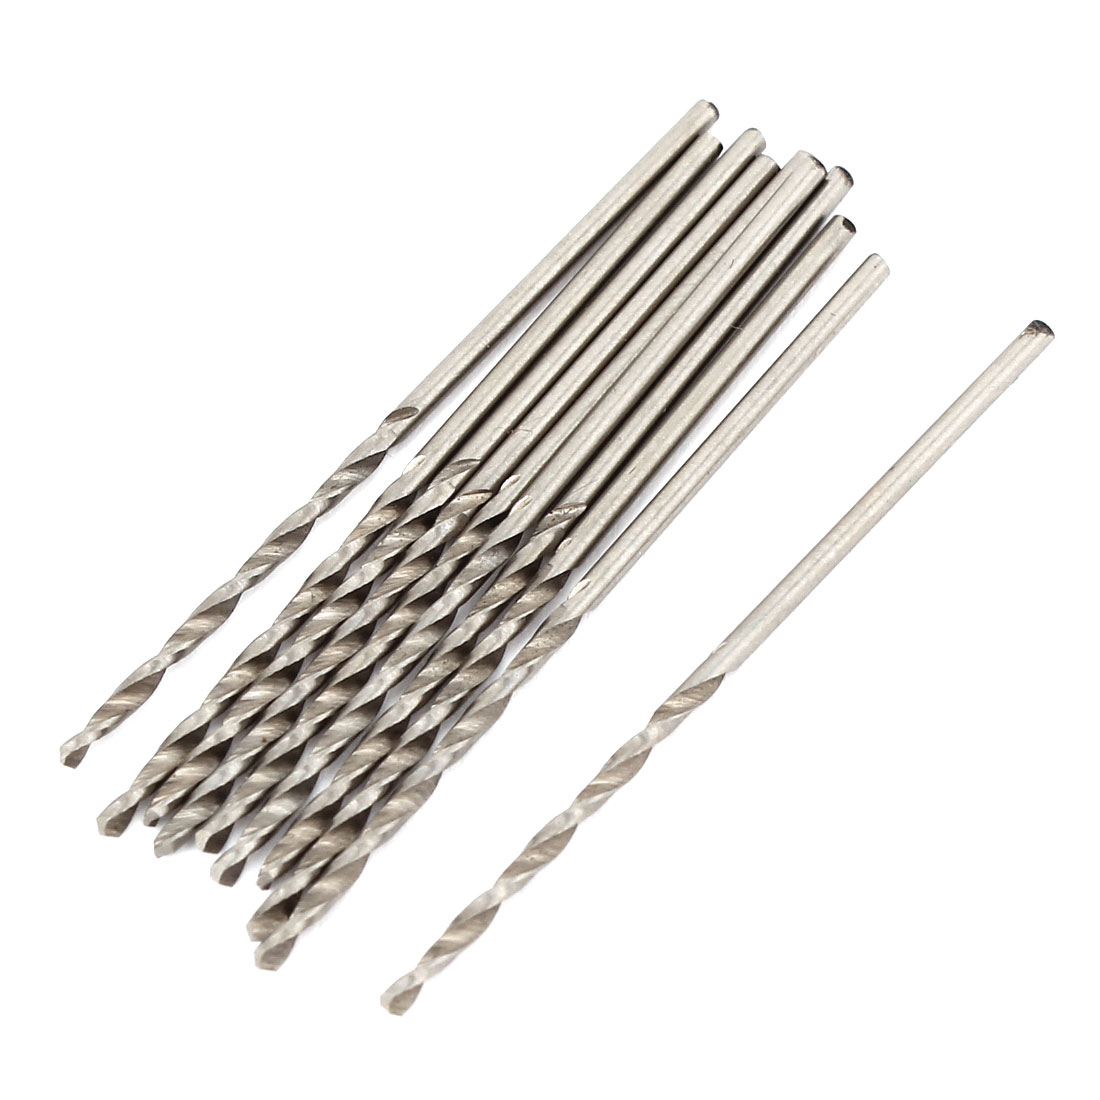 1.2mmx20mm High Speed Steel Straight Shank 2 Flutes Twist Drilling Bit 10 Pcs